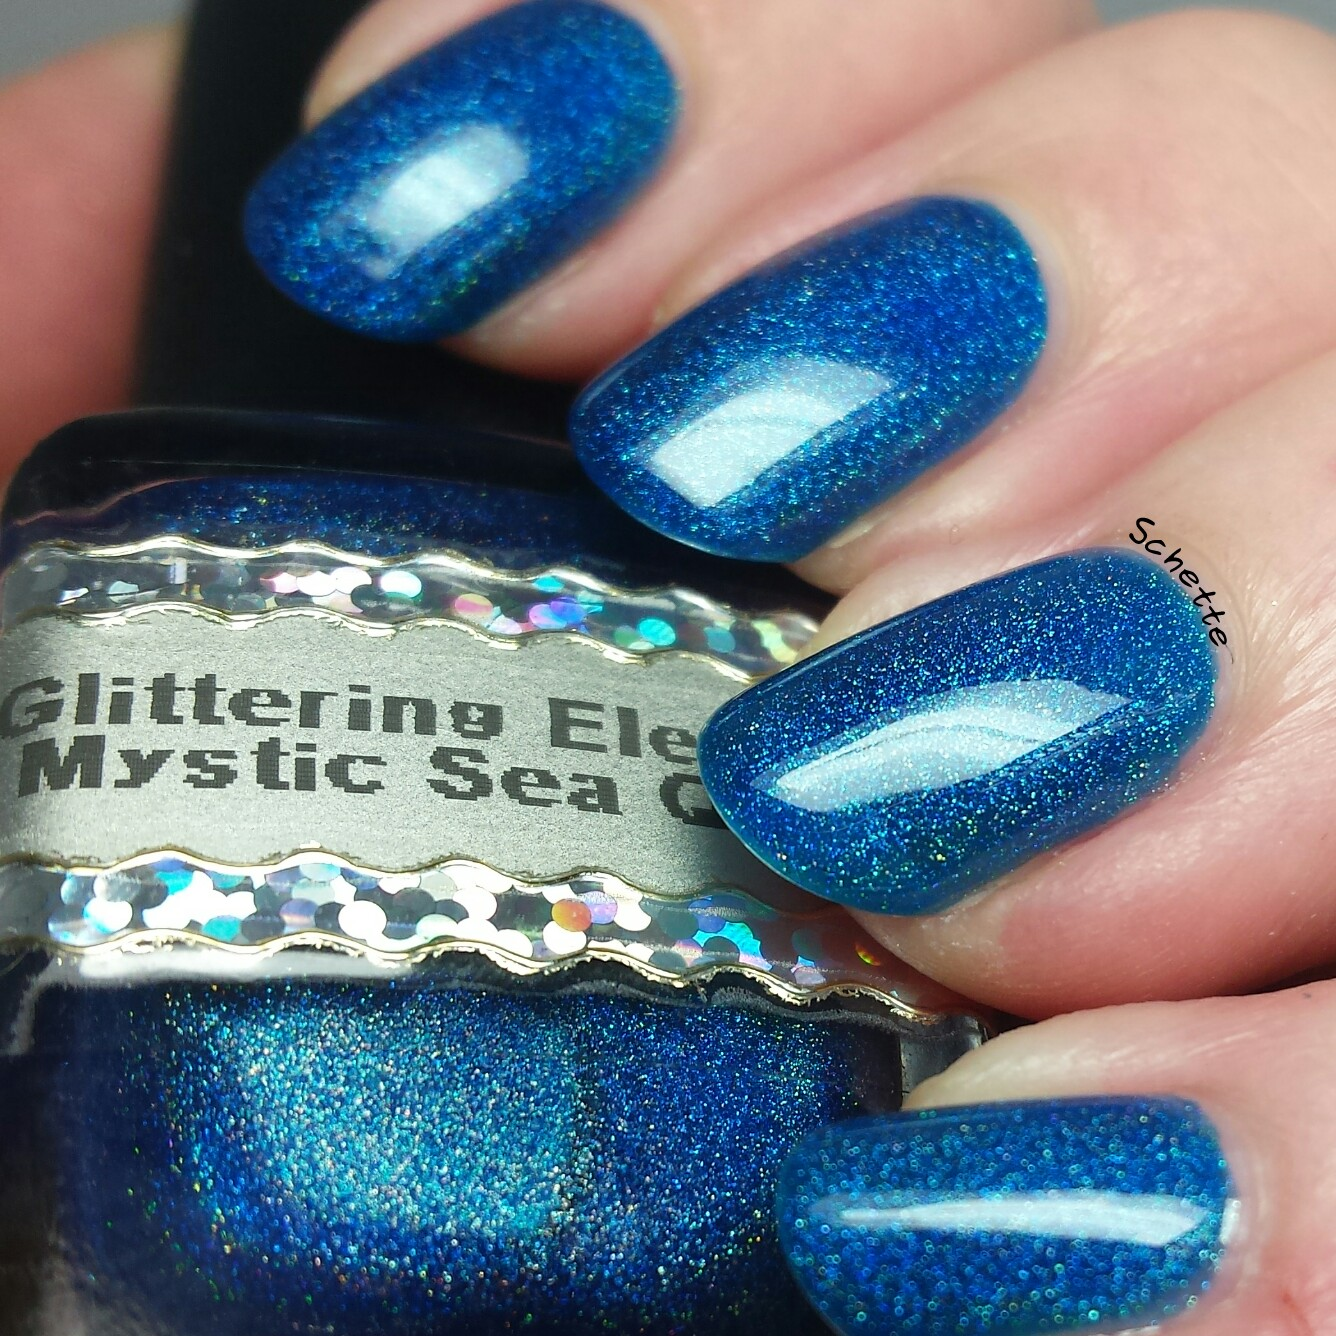 Glittering Elements - Mystic Sea Queen